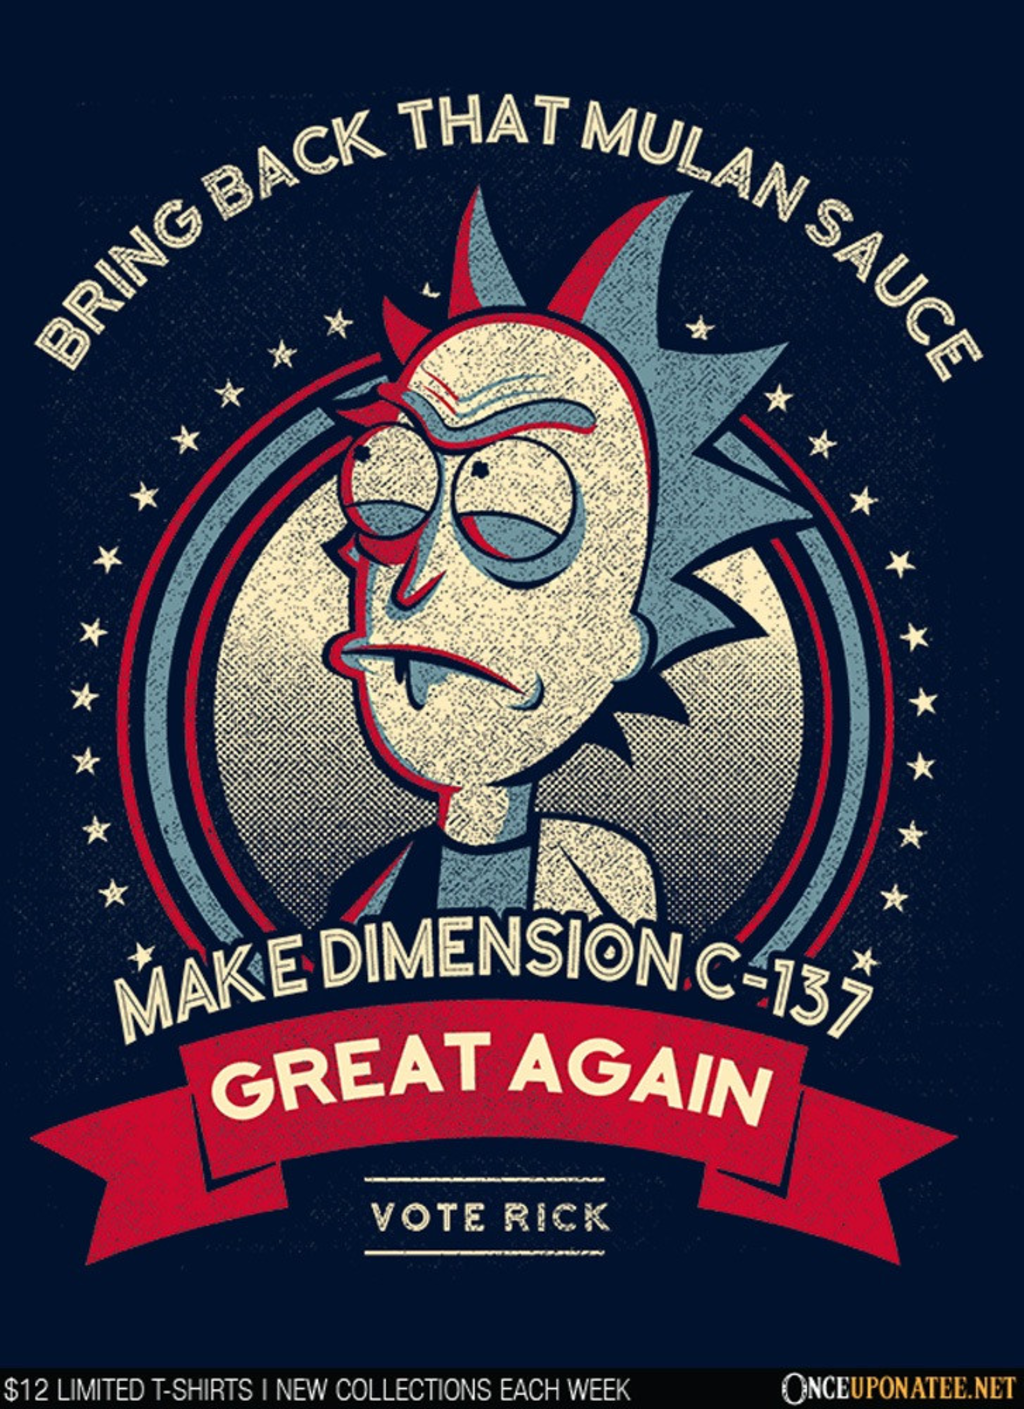 Once Upon a Tee: Make C-137 Great Again